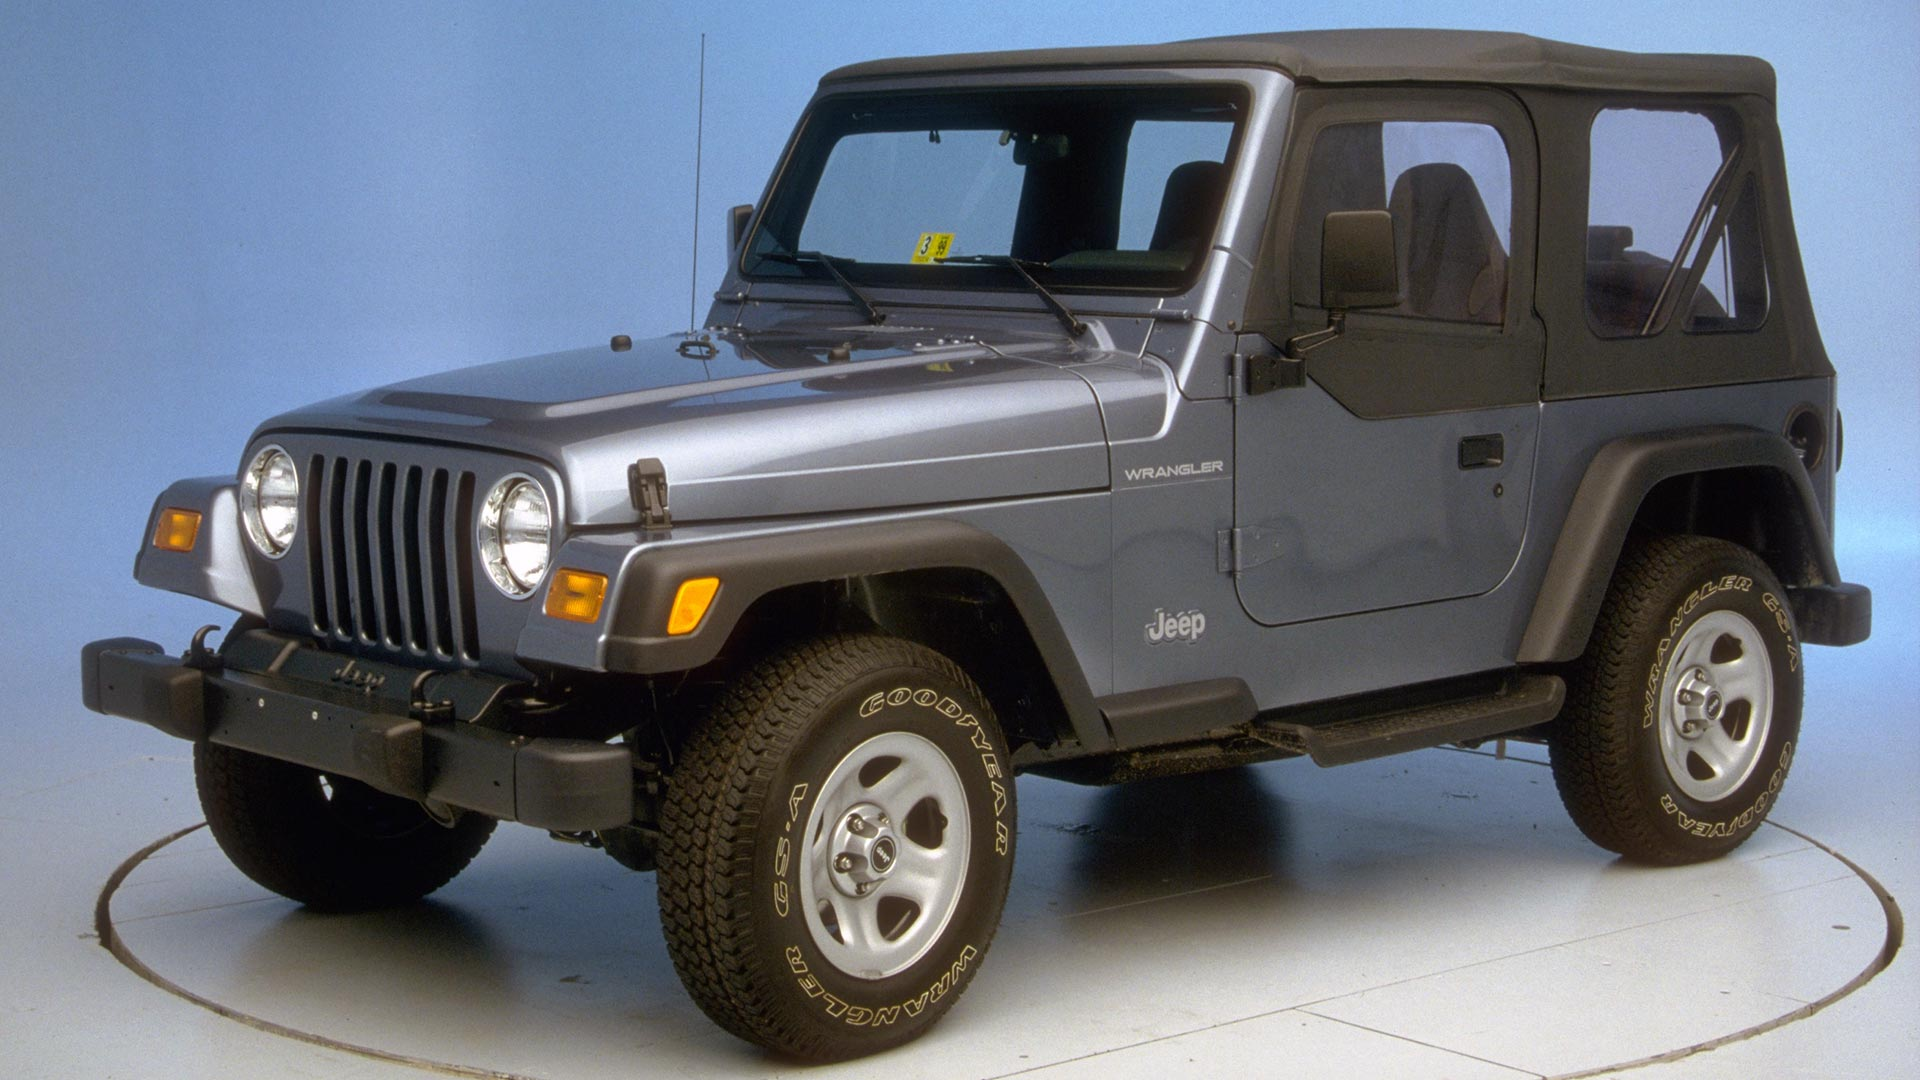 1998 Jeep Wrangler 2-door SUV